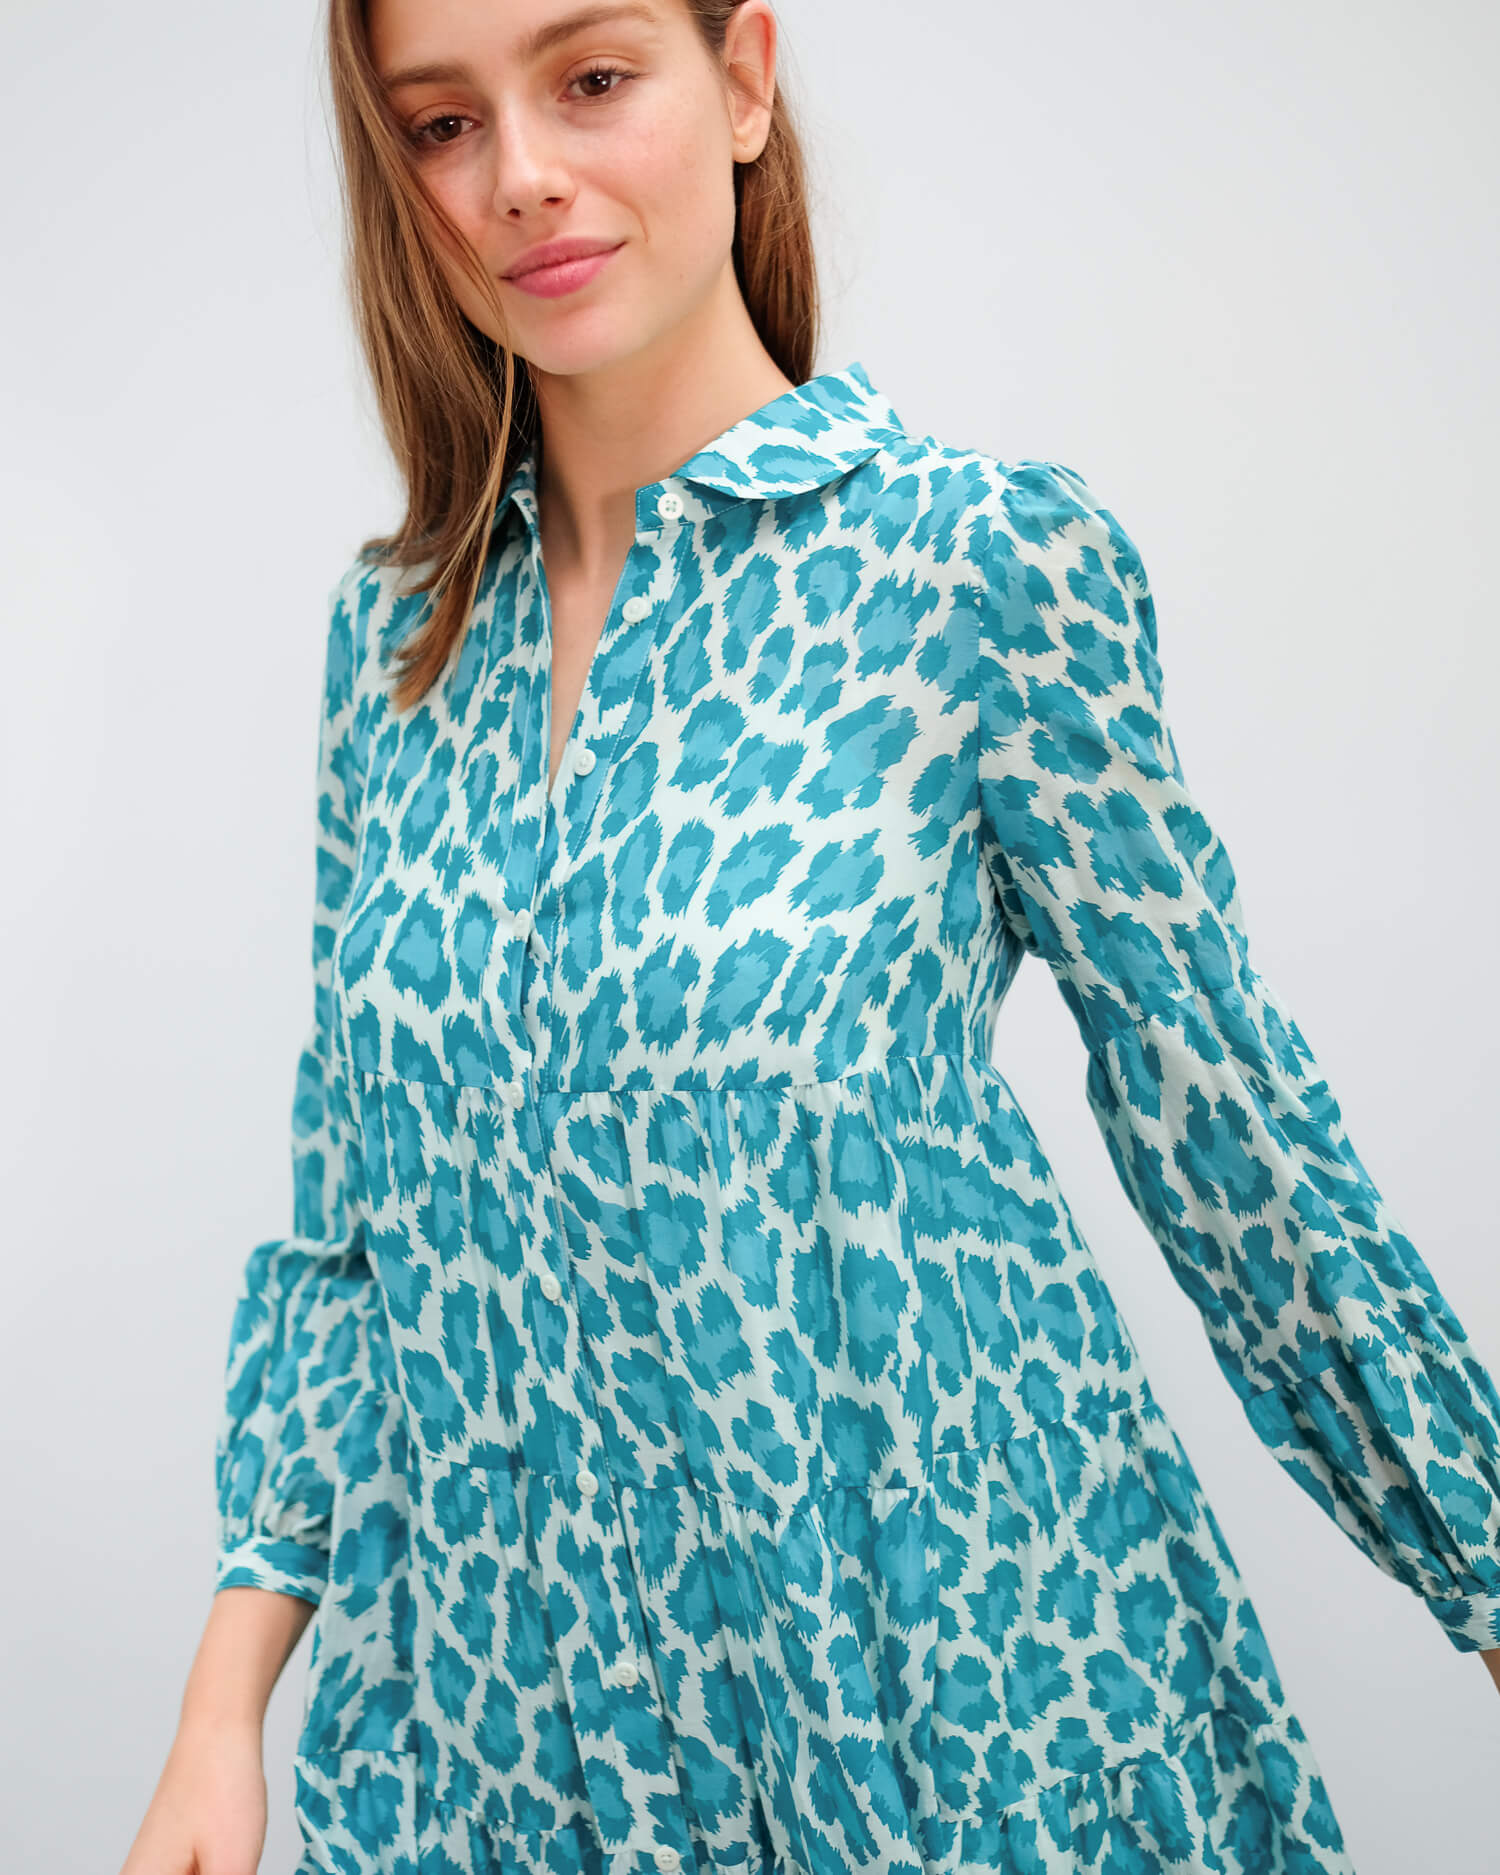 DVF Kiara dress in leopard